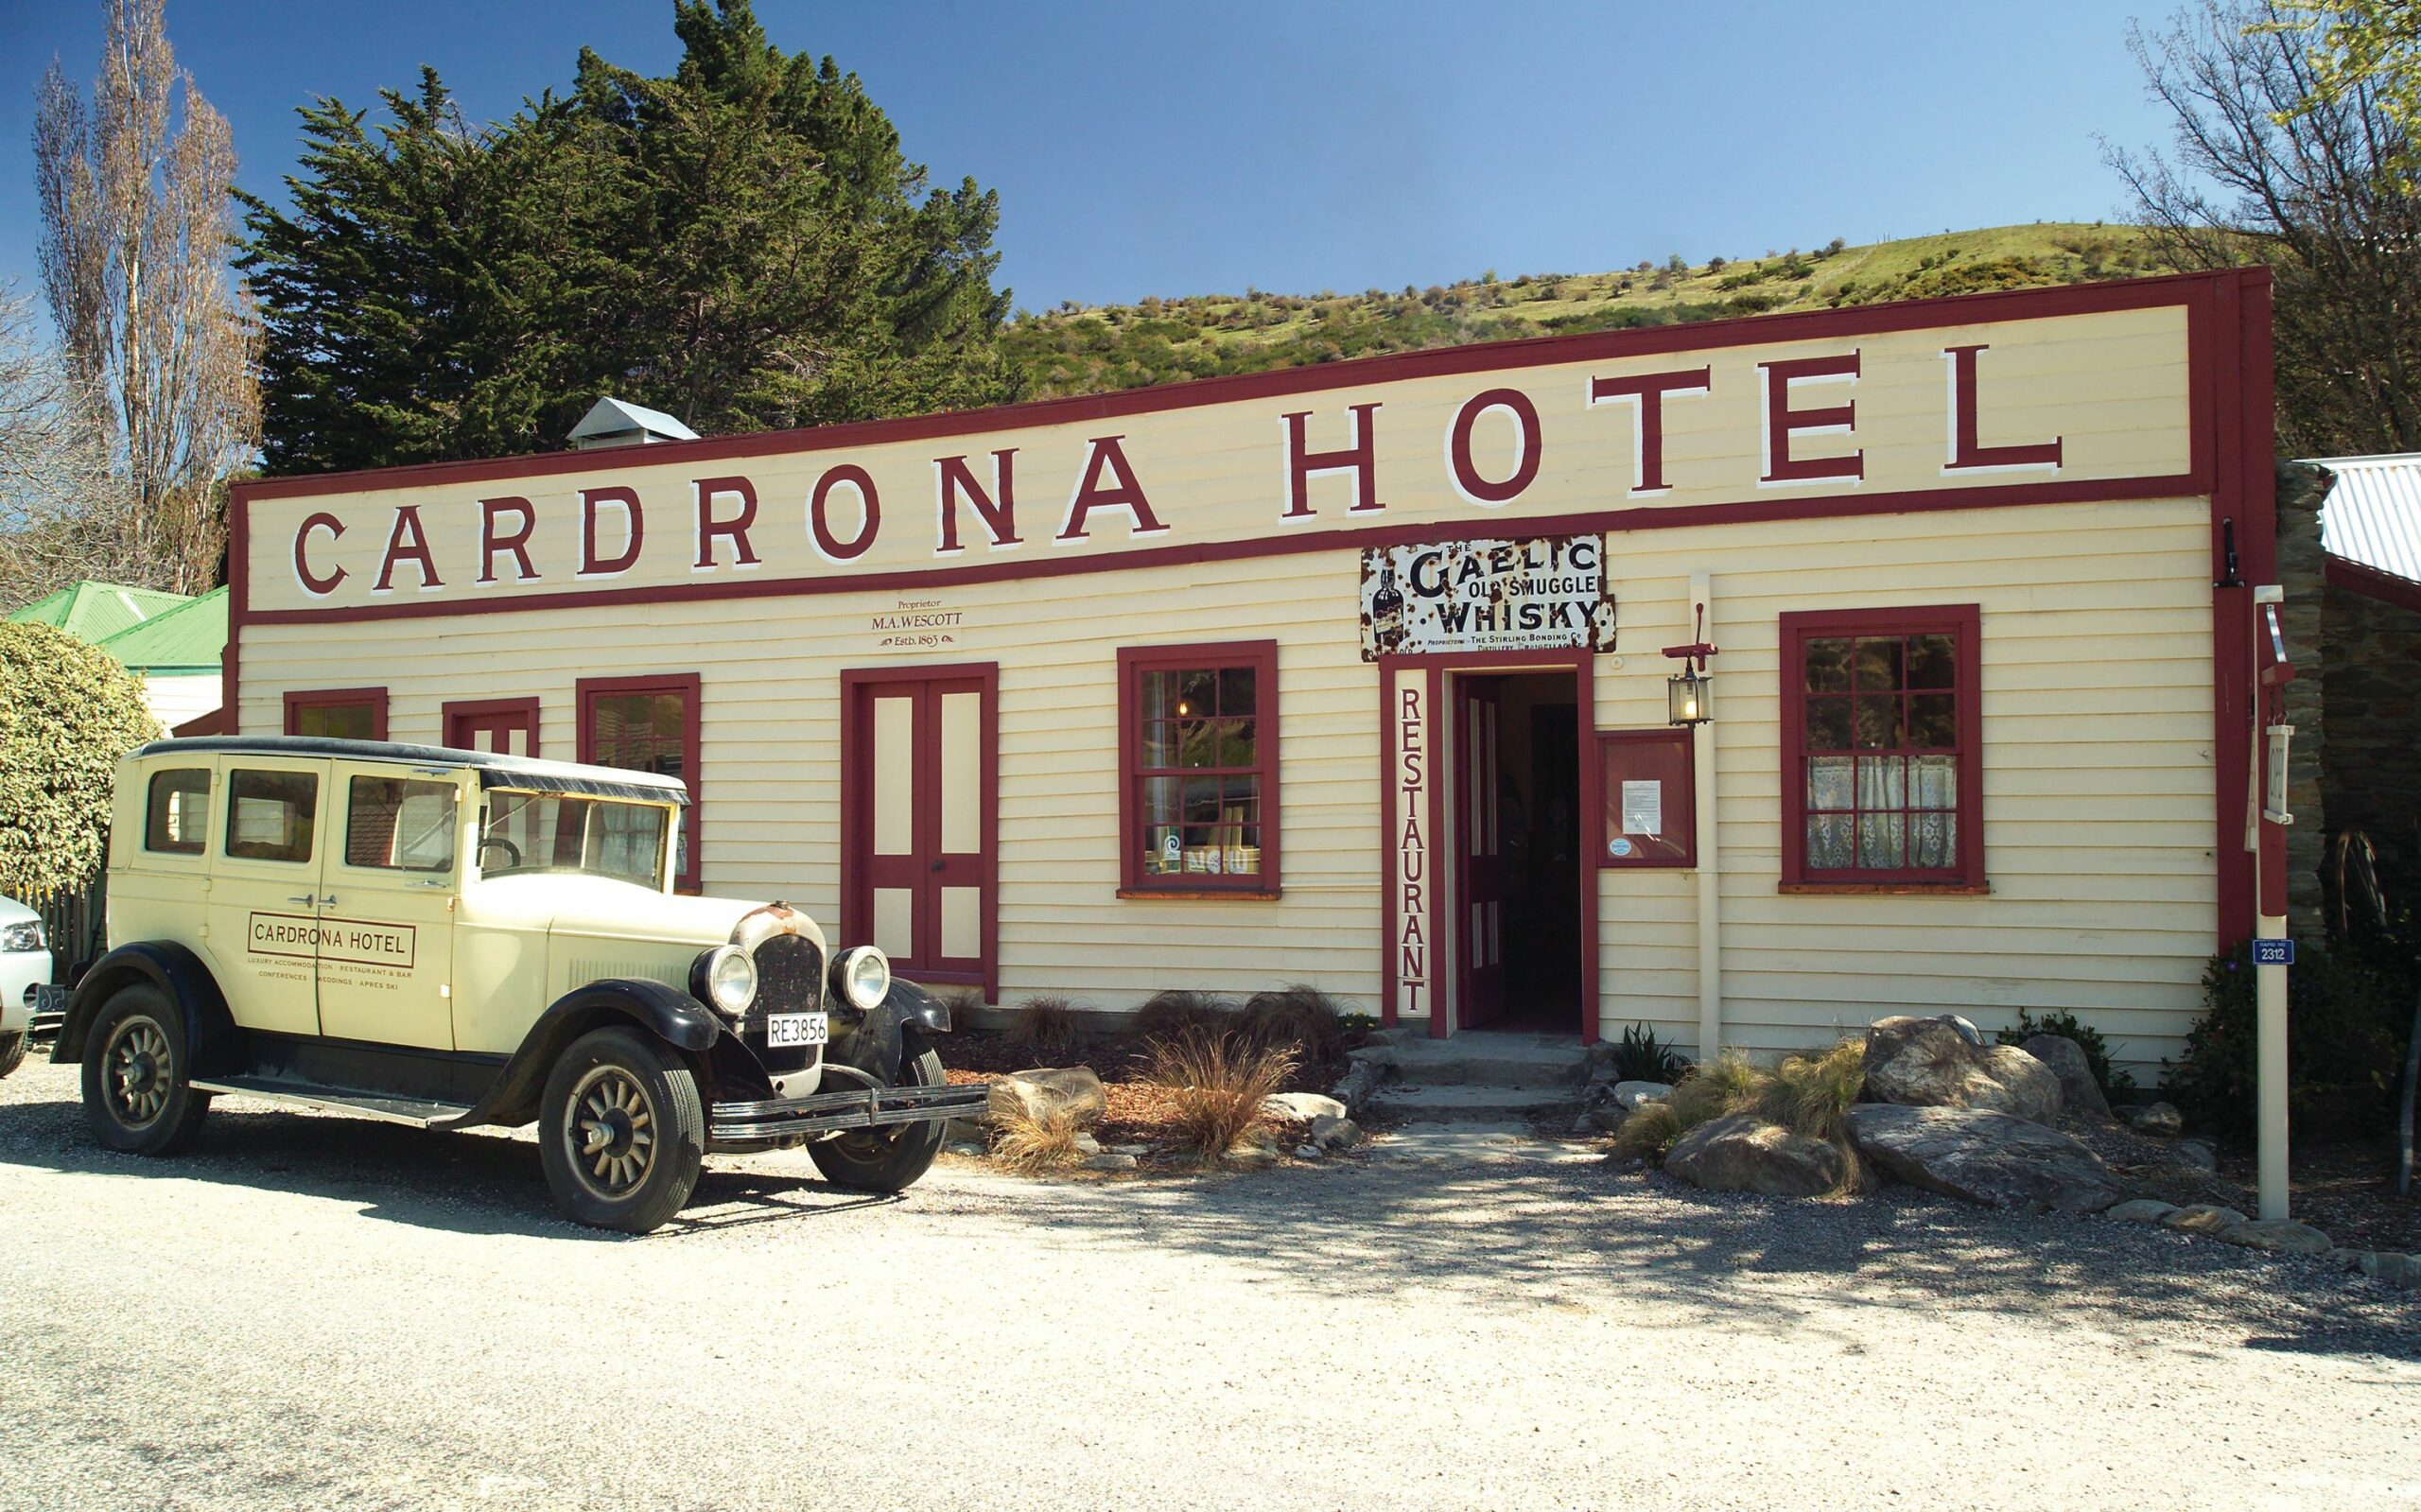 Cardrona Hotel with Cardrona Car parked in front